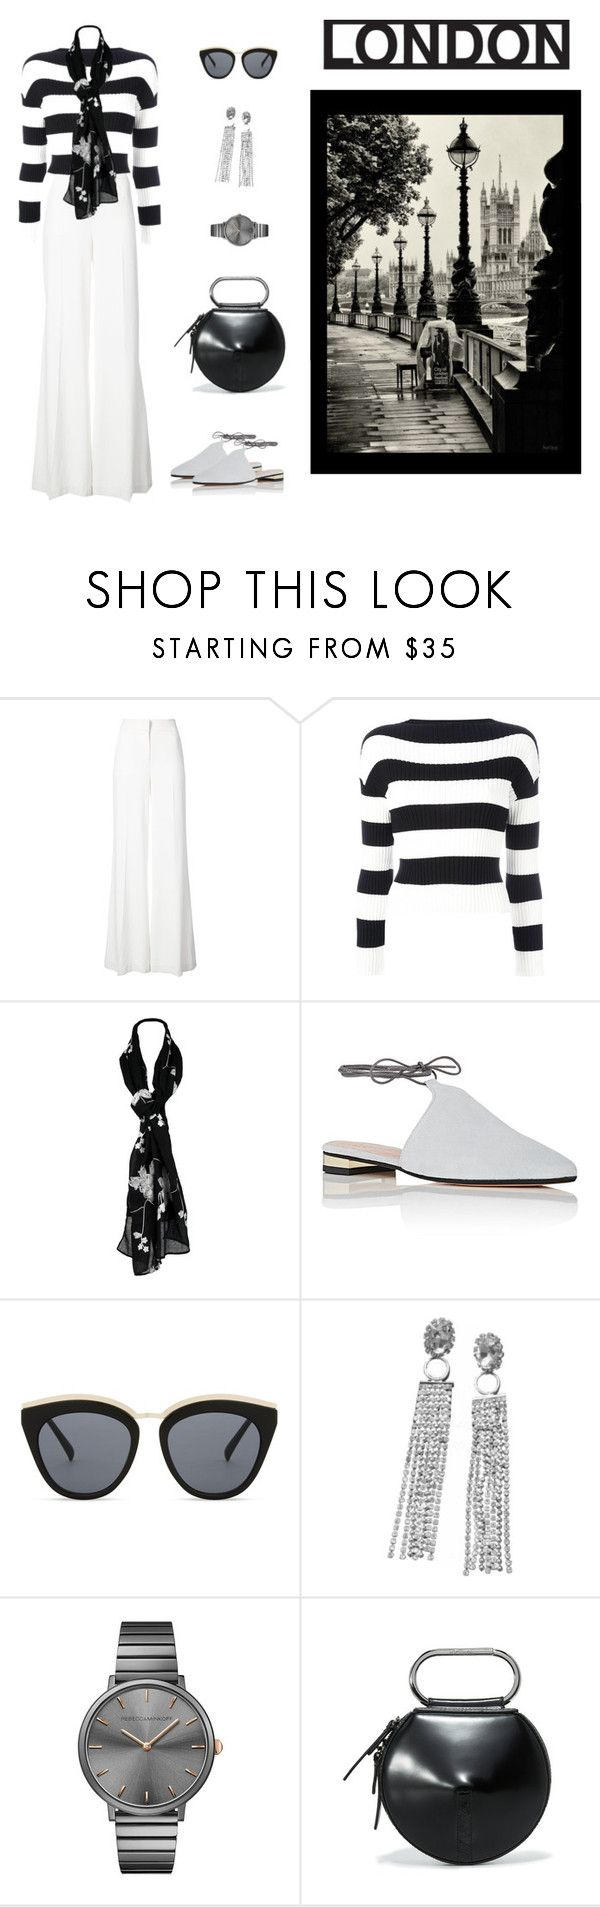 """""""Just Starting Out"""" by jjsunnygirl ❤ liked on Polyvore featuring Oscar de la Renta, Boutique Moschino, Barneys New York, Le Specs, Rebecca Minkoff and 3.1 Phillip Lim"""